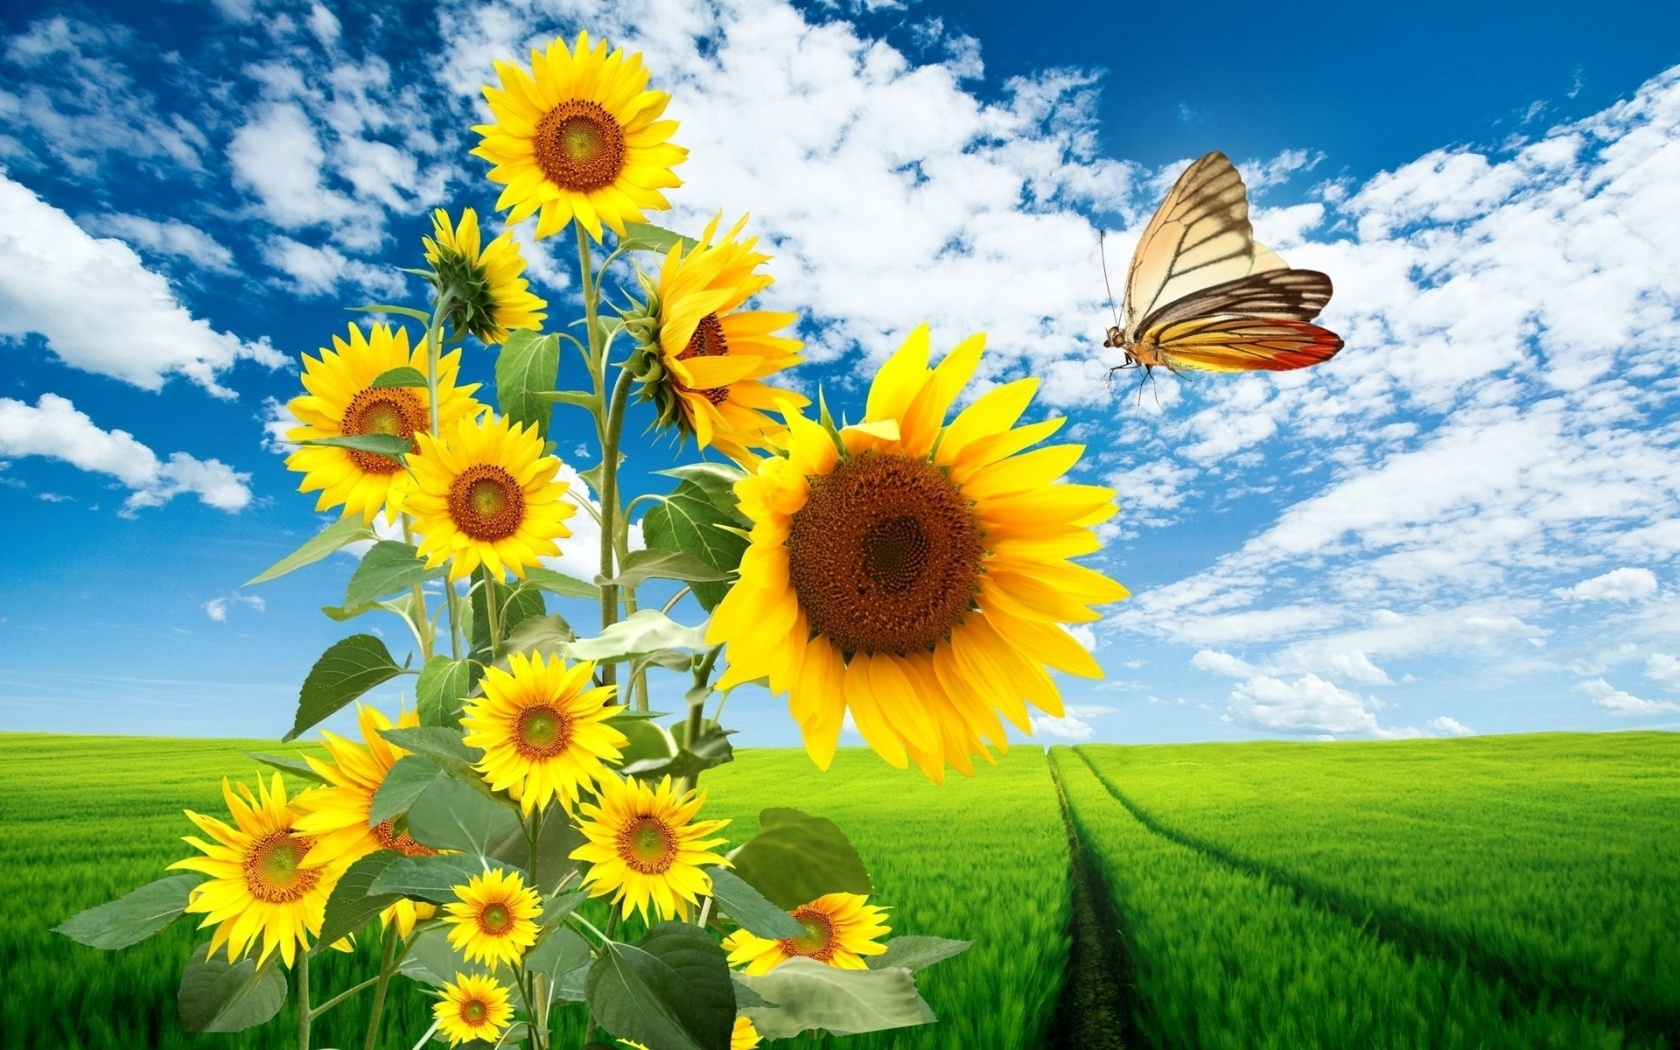 1680x1050 Sun Flowers Butterfly & Nature